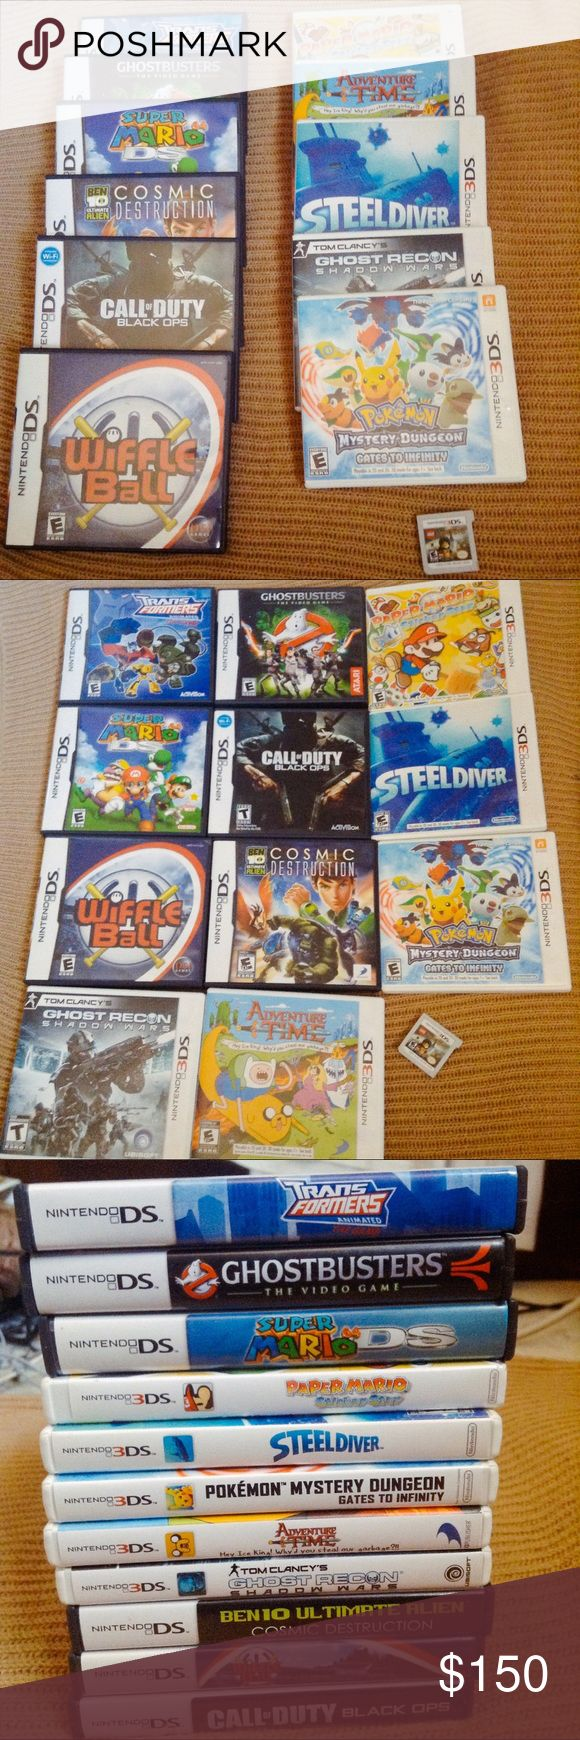 ✨Nintendo DS & 3DS Games Lot✨ 12-Game Lot includes: (DS) Transformers, Ghostbusters, Super Mario 64, Ben 10 Ultimate Alien: Cosmic Destruction, Wiffle Ball, and Call of Duty: Black Ops  (3DS) Paper Mario Sticker Star, Steeldiver, Pokémon Mystery Dungeon: Gates to Infinity, Adventure Time: Hey Ice King! Why'd you steal our garbage?!!, Tom Clancy's Ghost Recon Shadow Wars, and LEGO: Lord of the Rings  Note: Paper Mario has no manual, LEGO Lord of the Rings is CARTRIDGE ONLY, and Transformers…